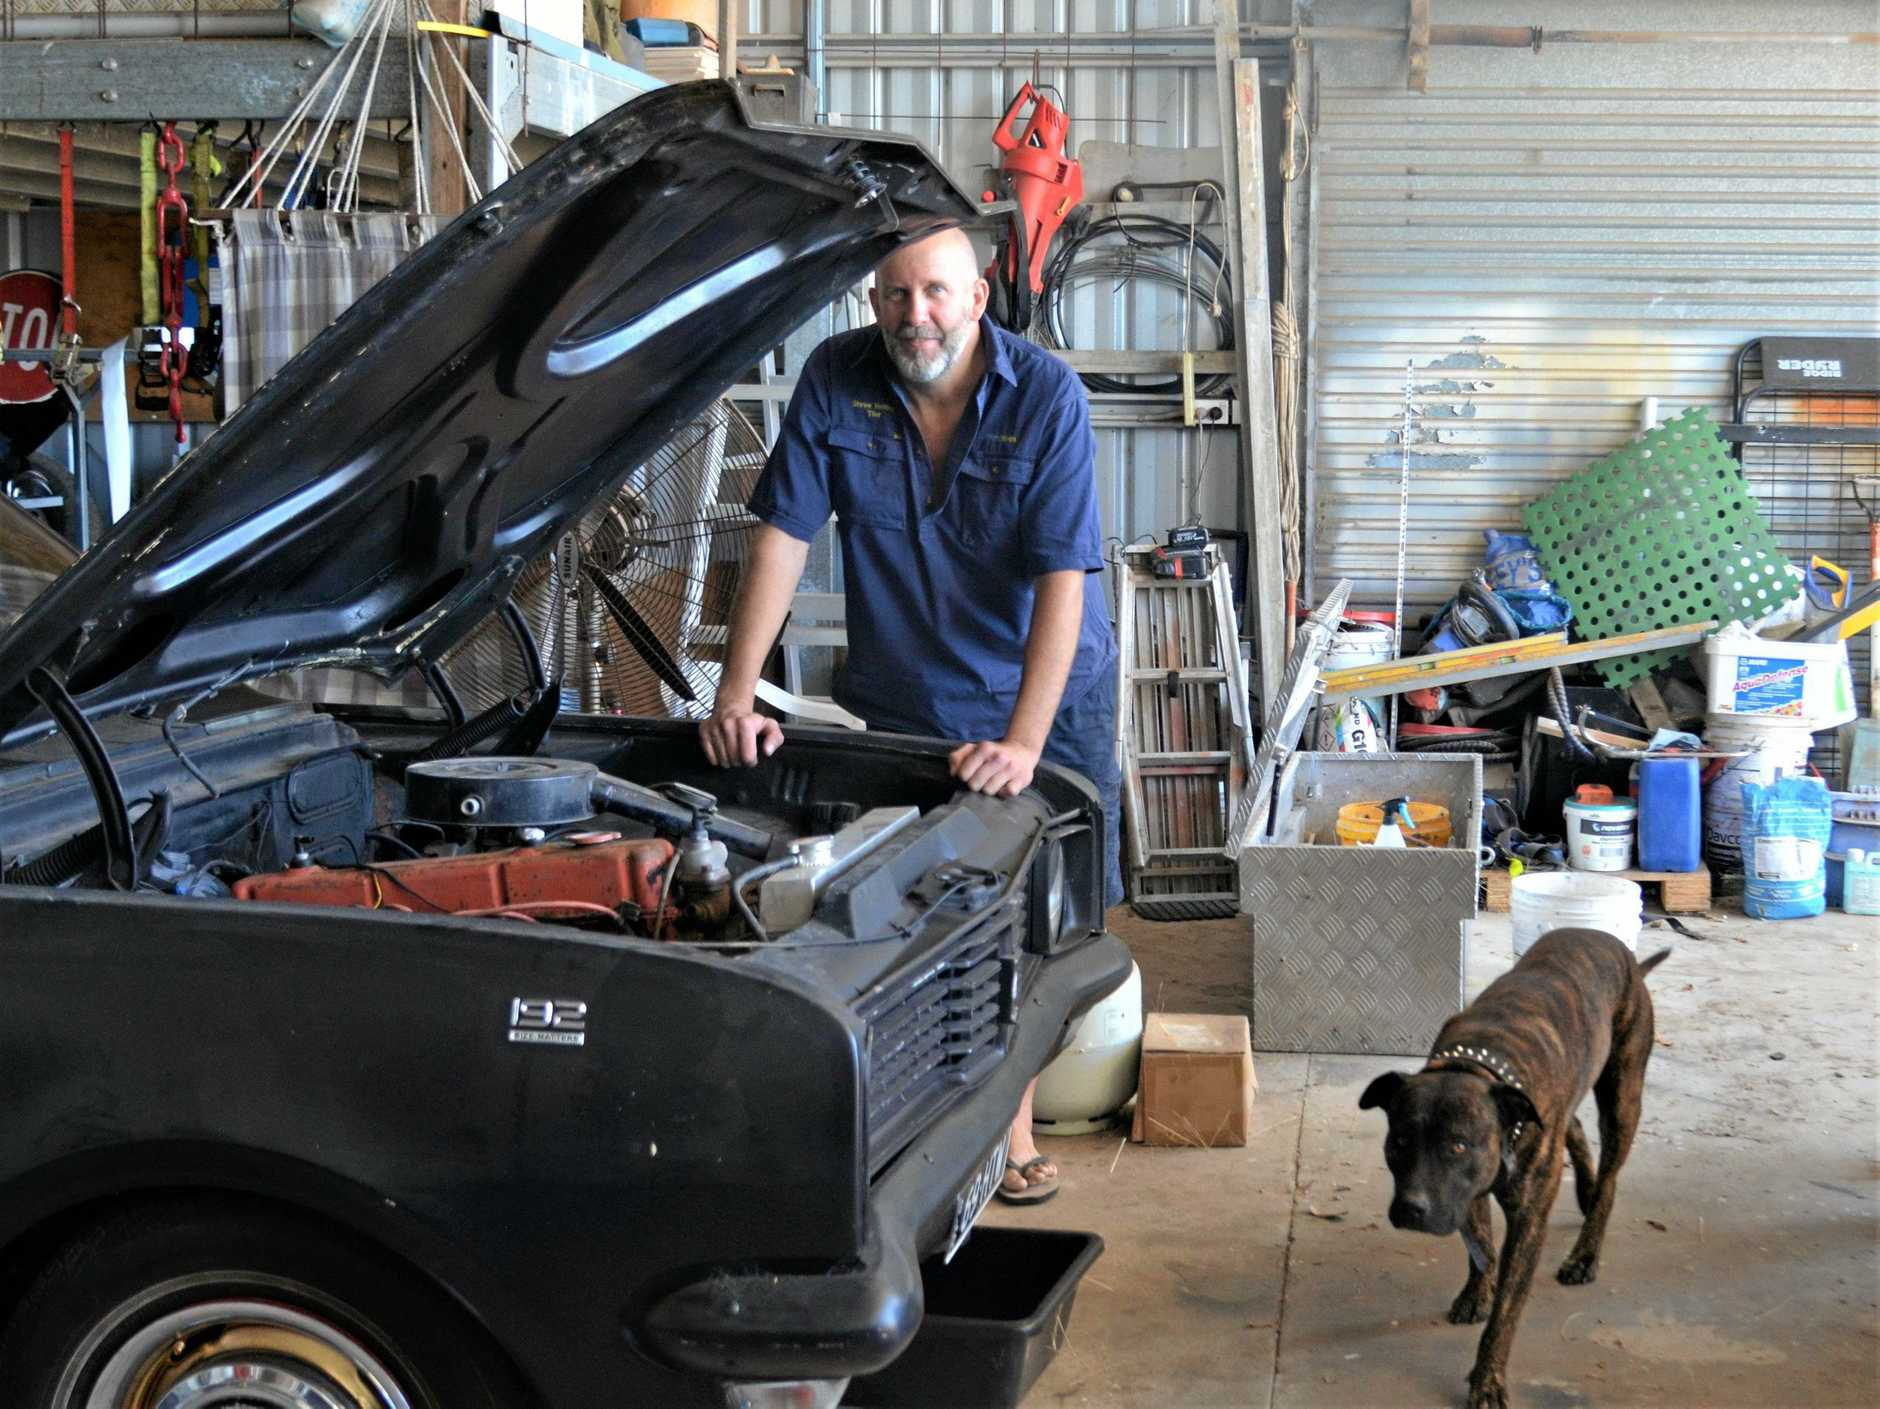 LISTEN UP: Steve Henley, 38, had fallen asleep after working in his garage, when he realised he couldn't feel his hand,